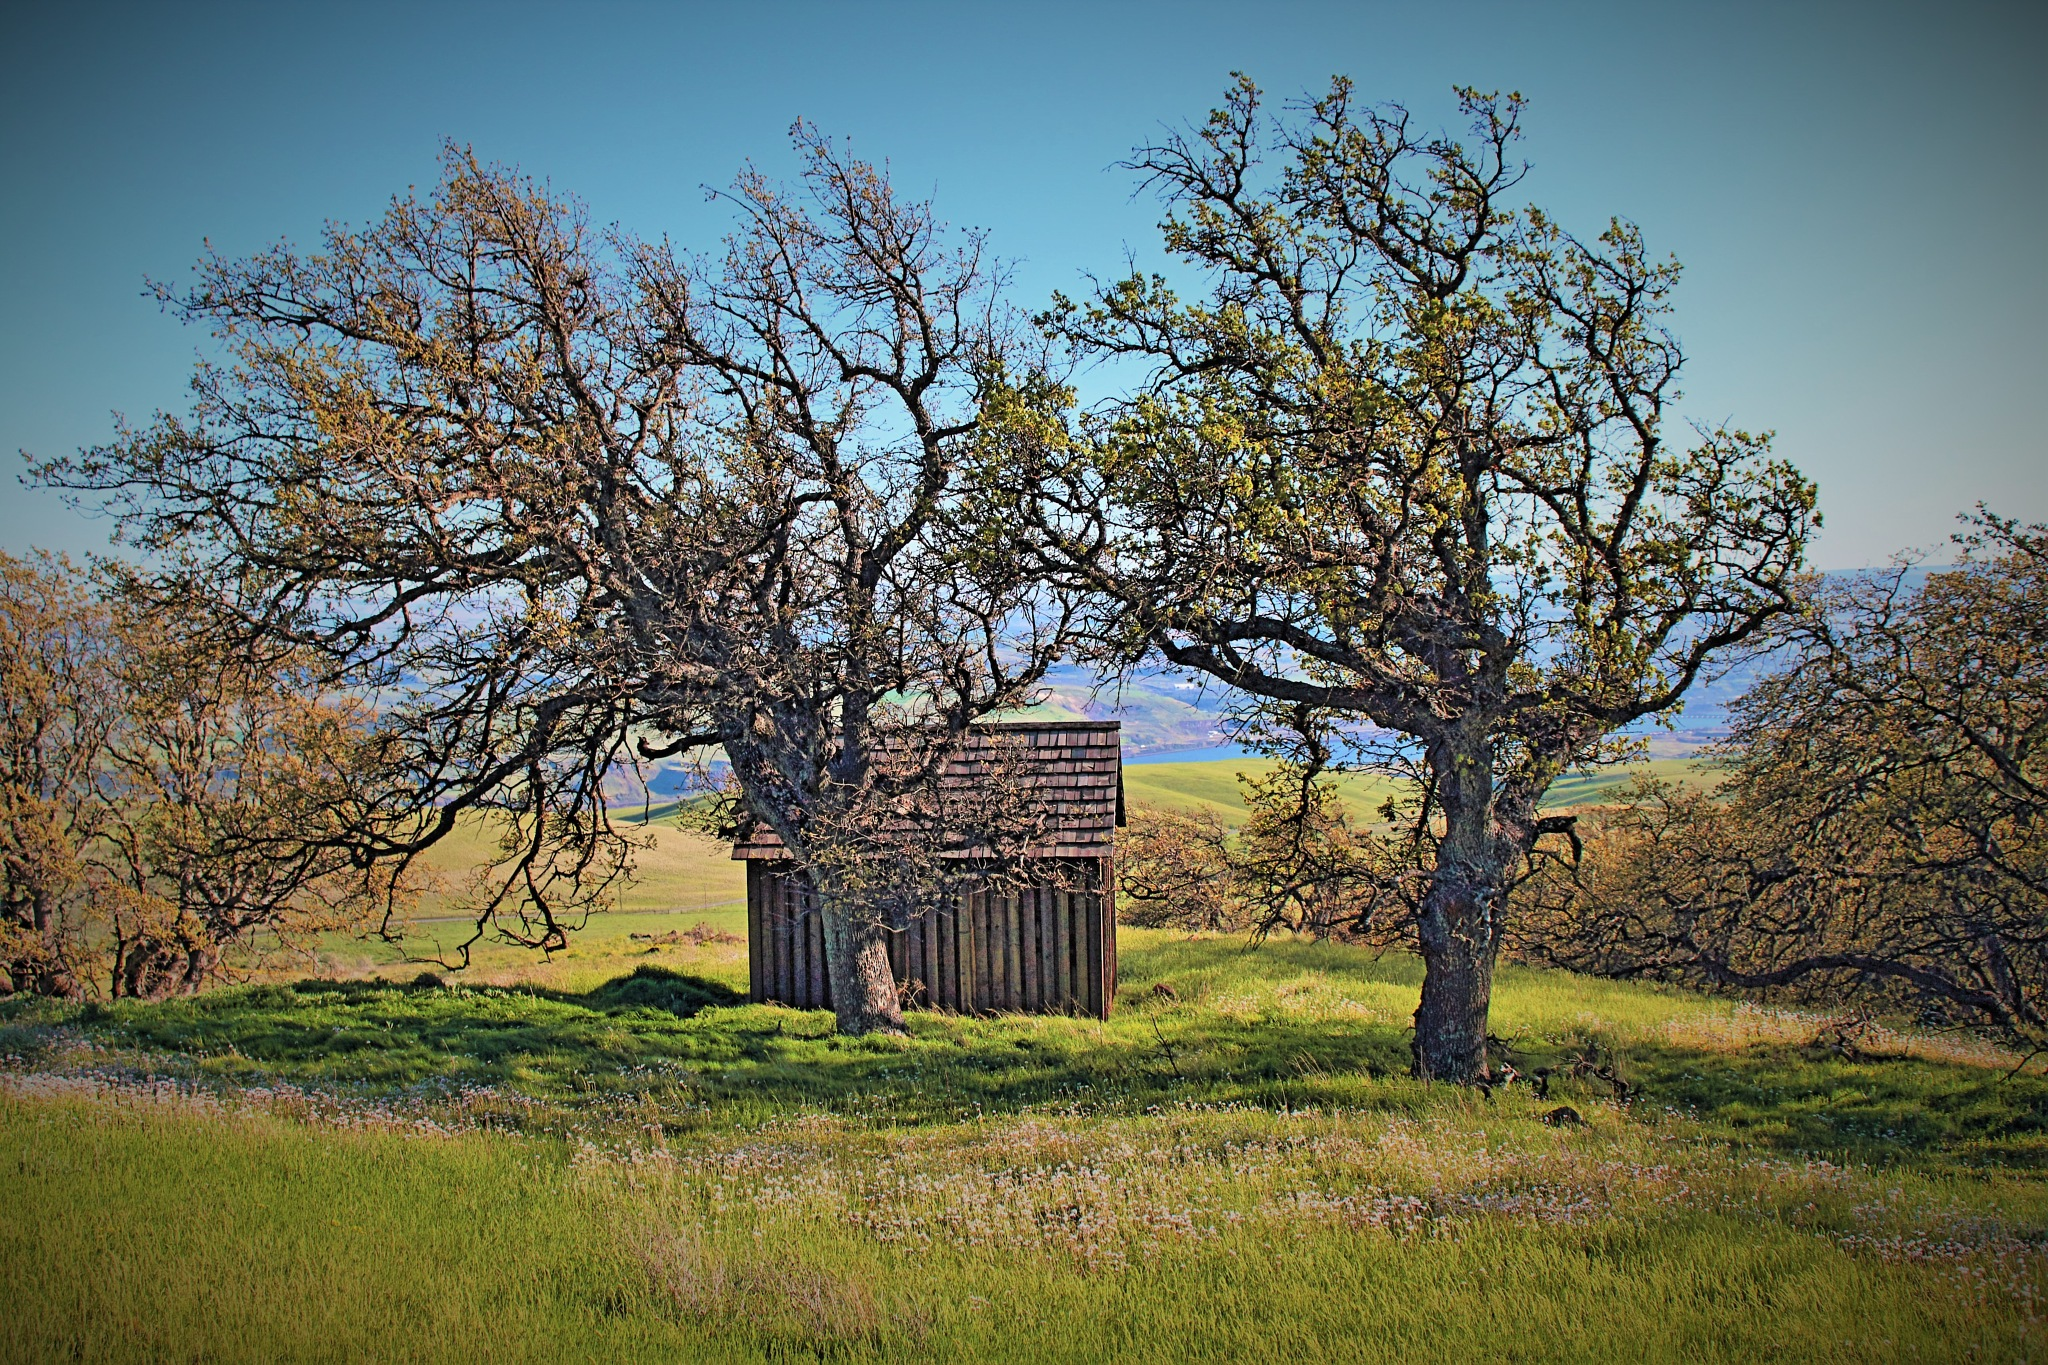 Dalles Mt. Ranch by Kevin7